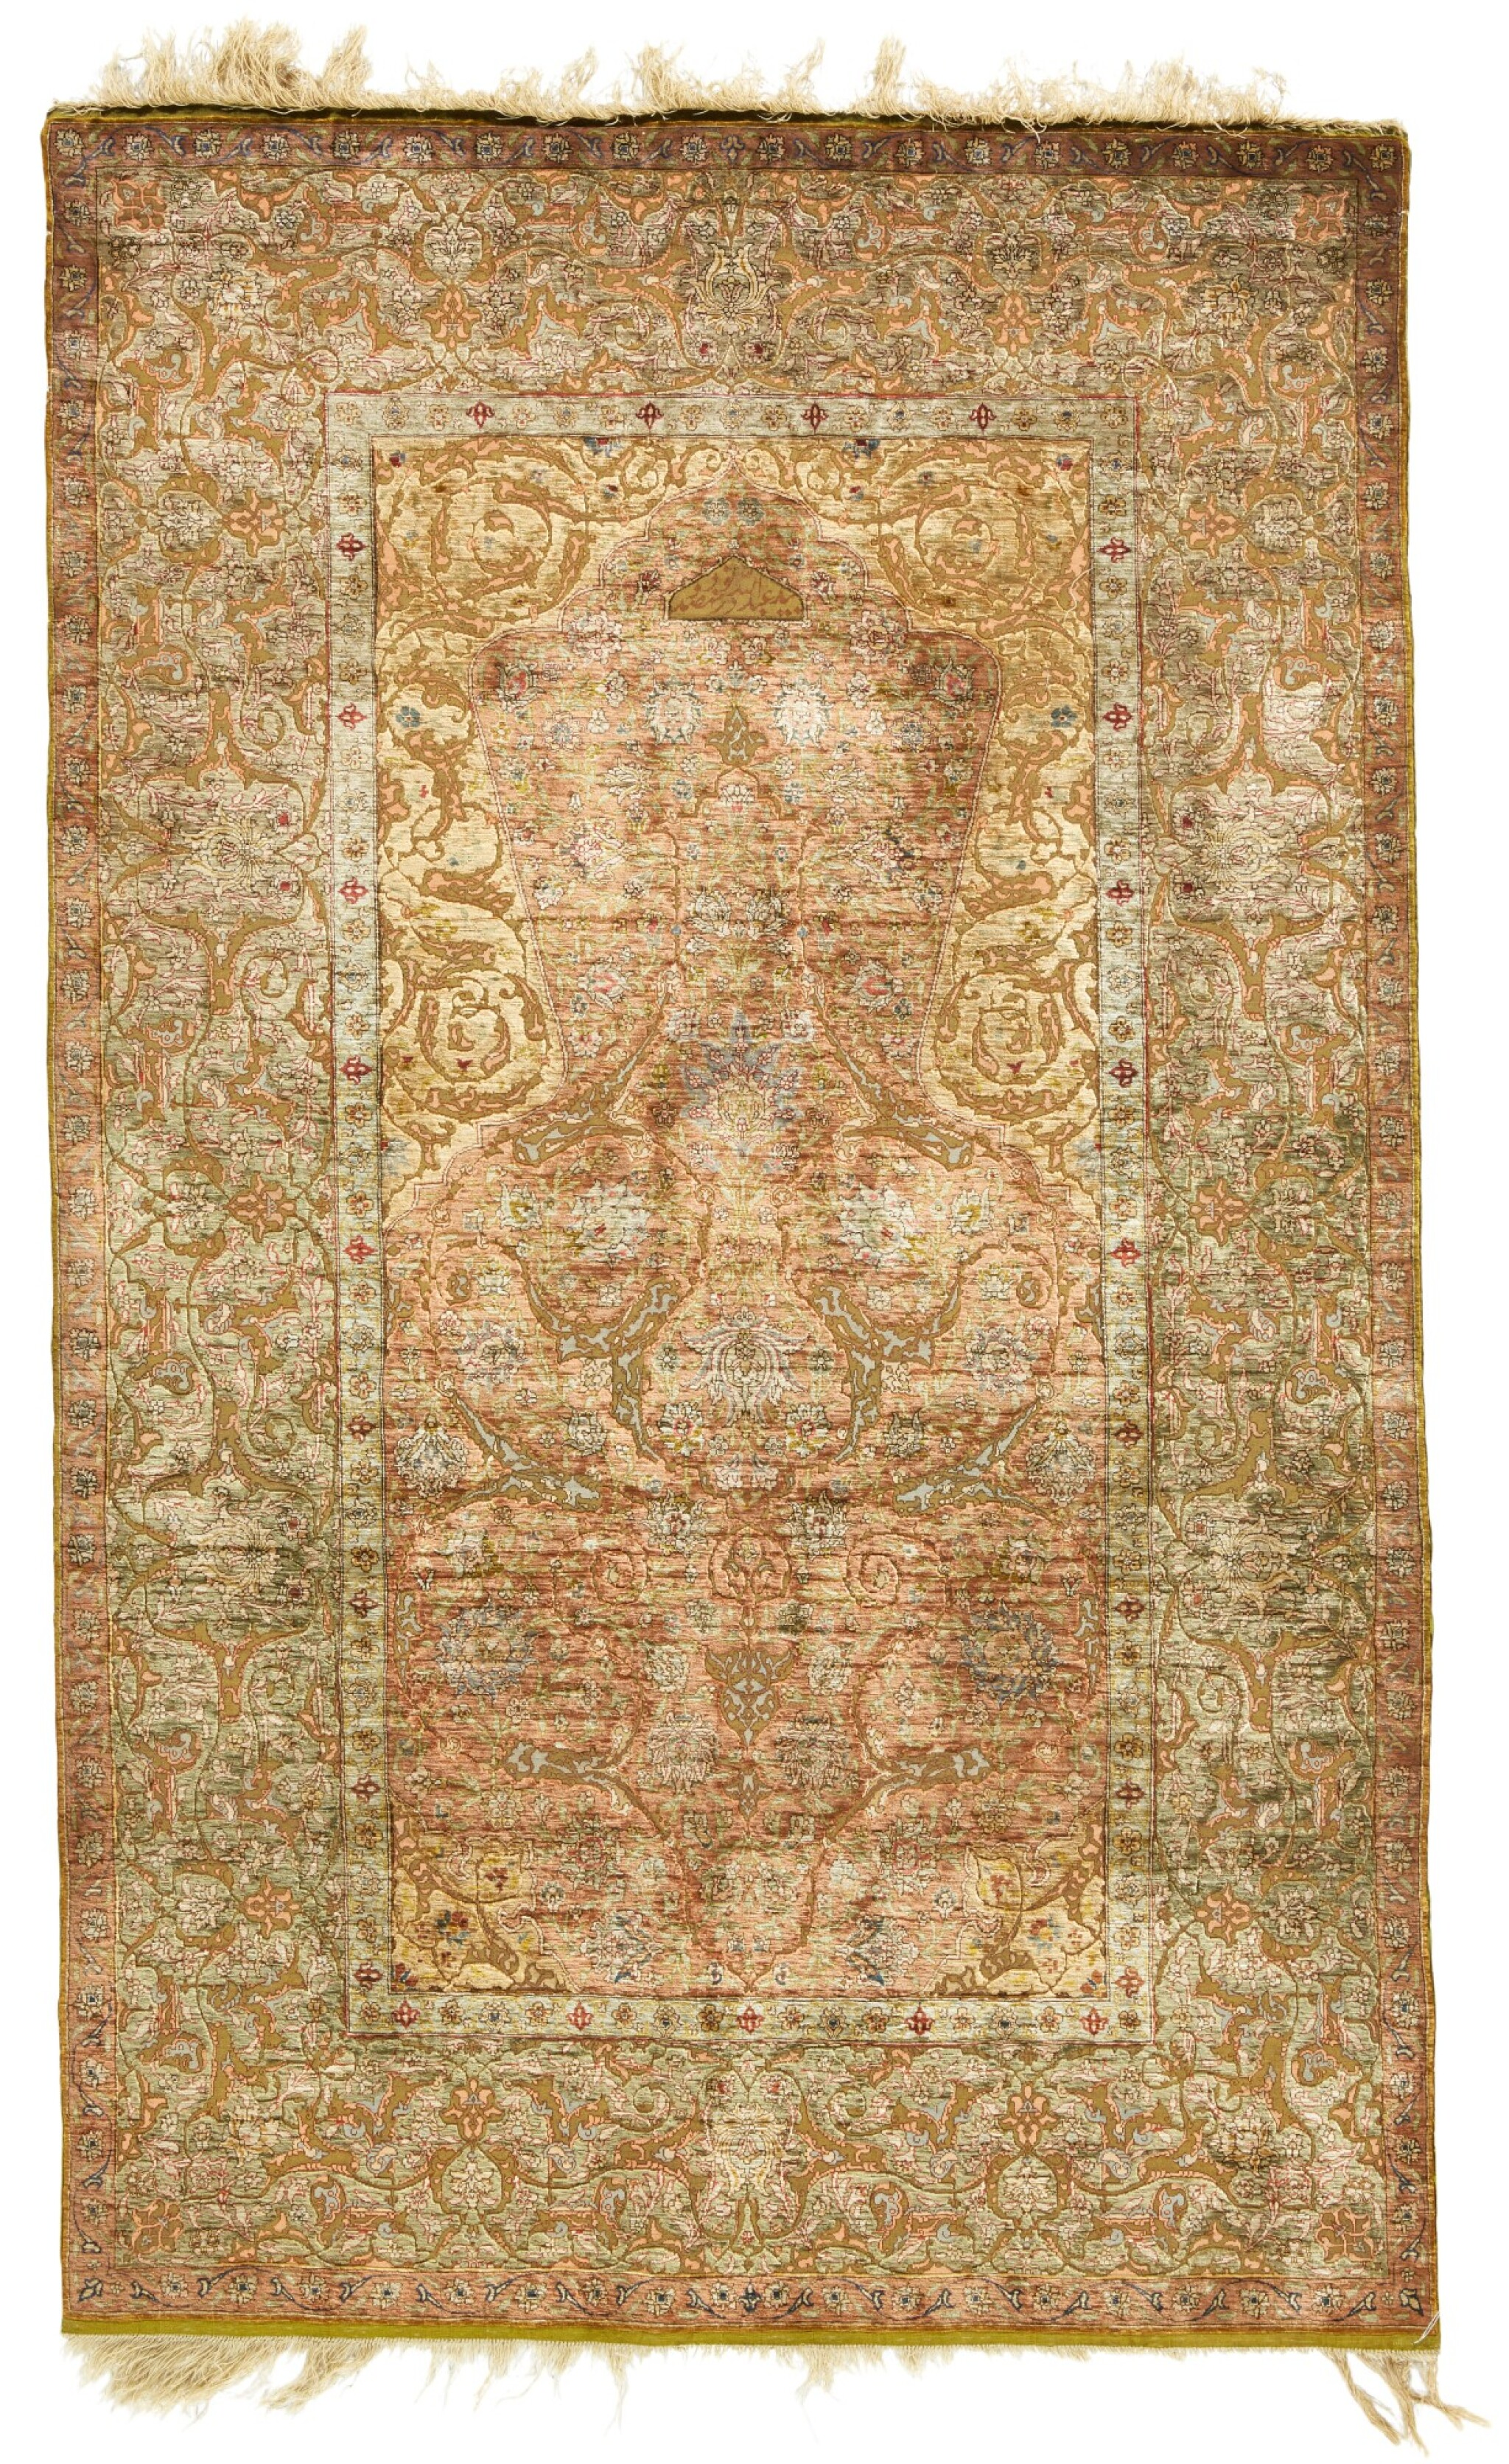 View full screen - View 1 of Lot 139. A Kum Kapi silk niche rug with silk and metal thread brocading, Istanbul, Turkey, attributed to Zareh Penyamin, circa 1900.